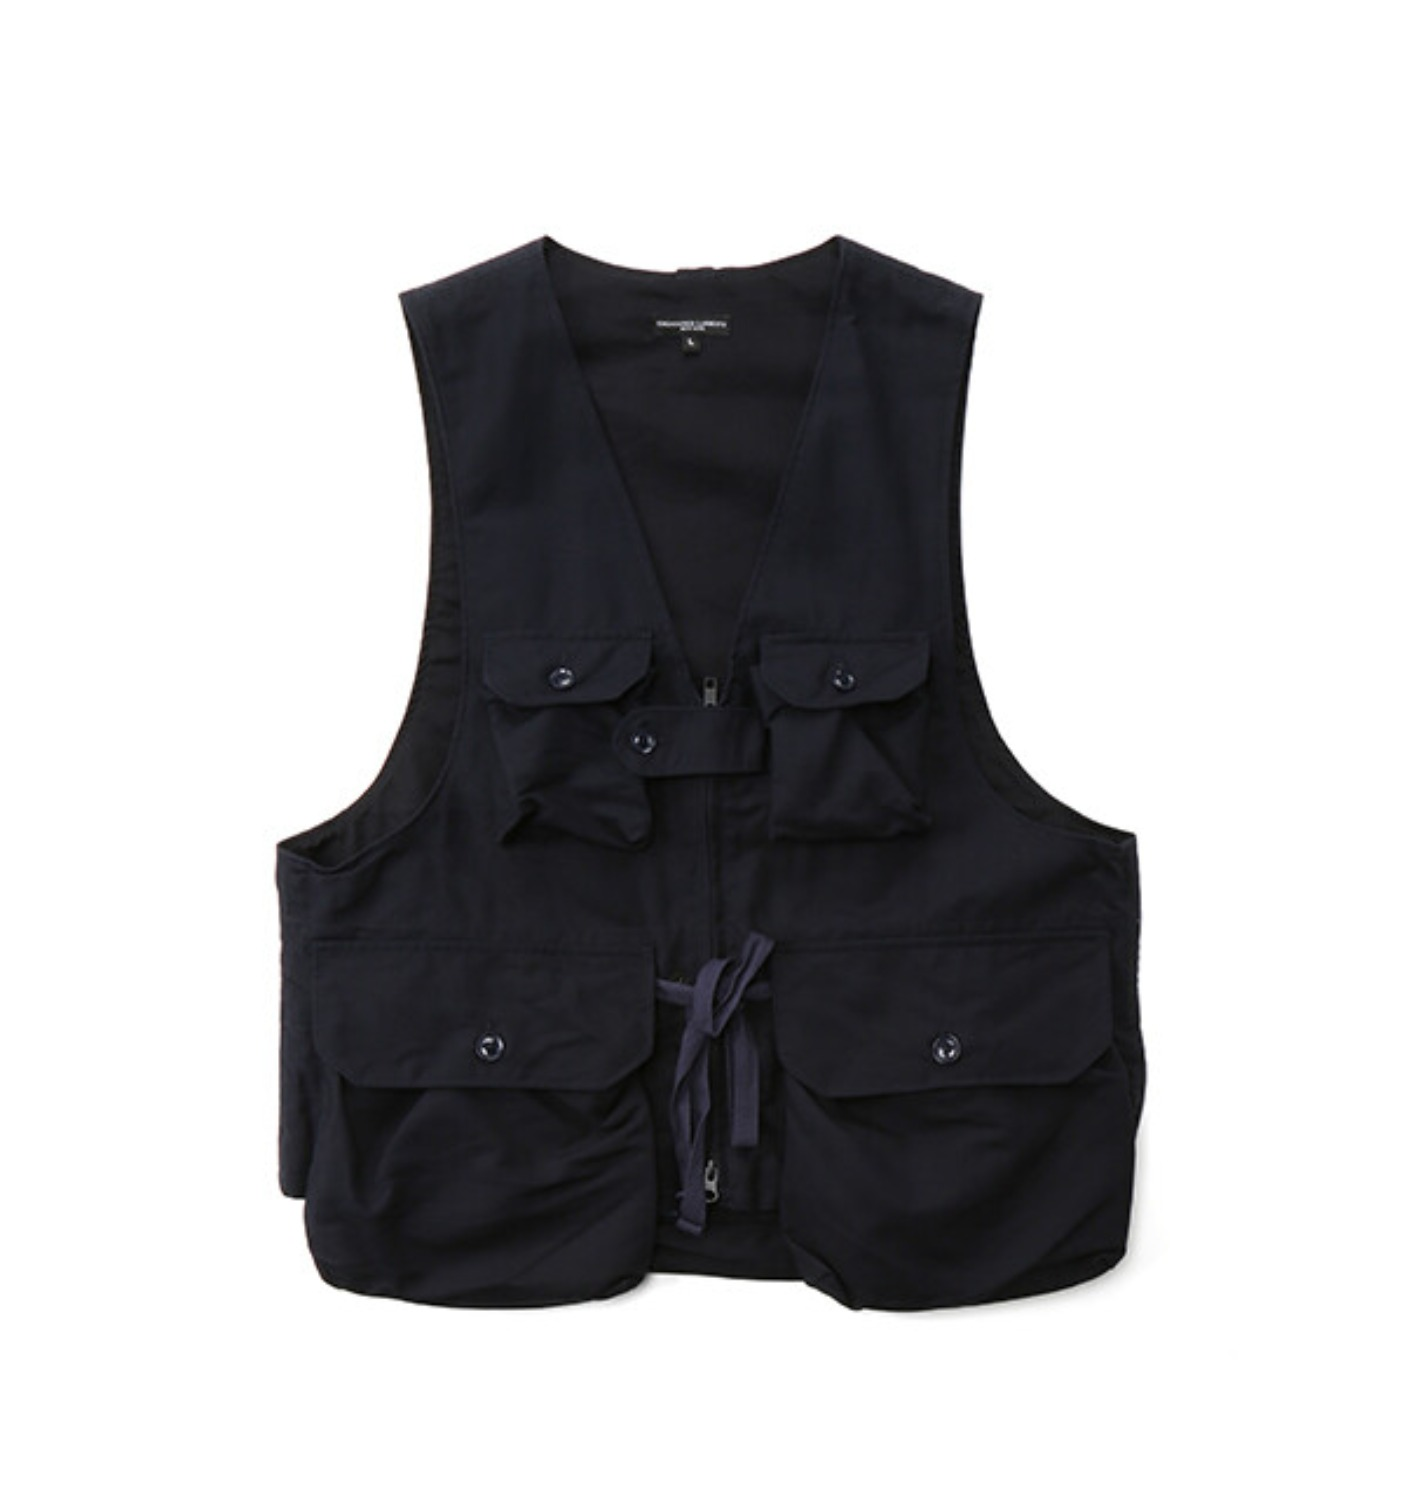 GAME VEST NAVY COTTON DOUBLE CLOTH